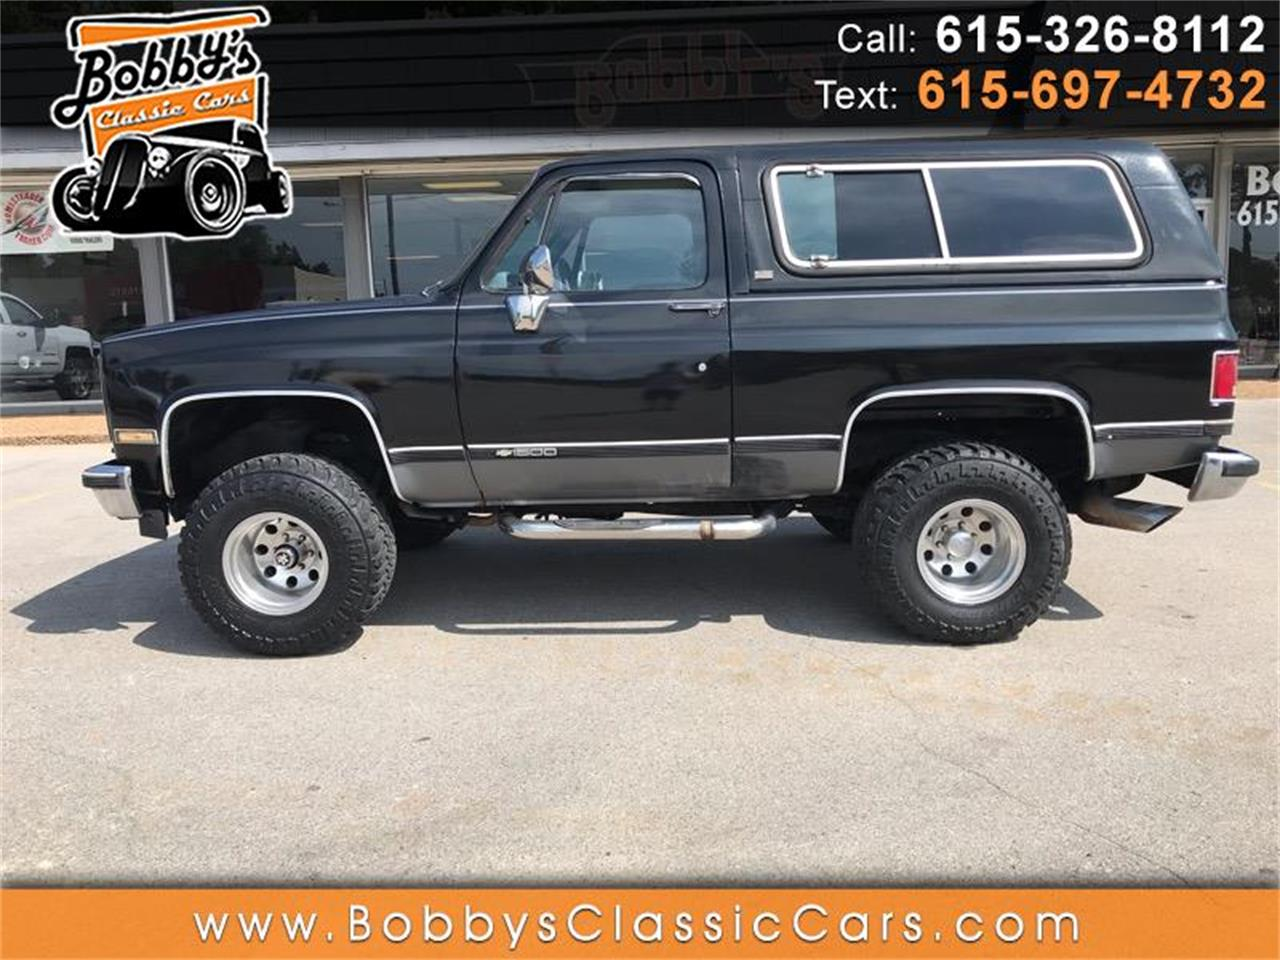 1990 Chevrolet Blazer (CC-1237008) for sale in Dickson, Tennessee